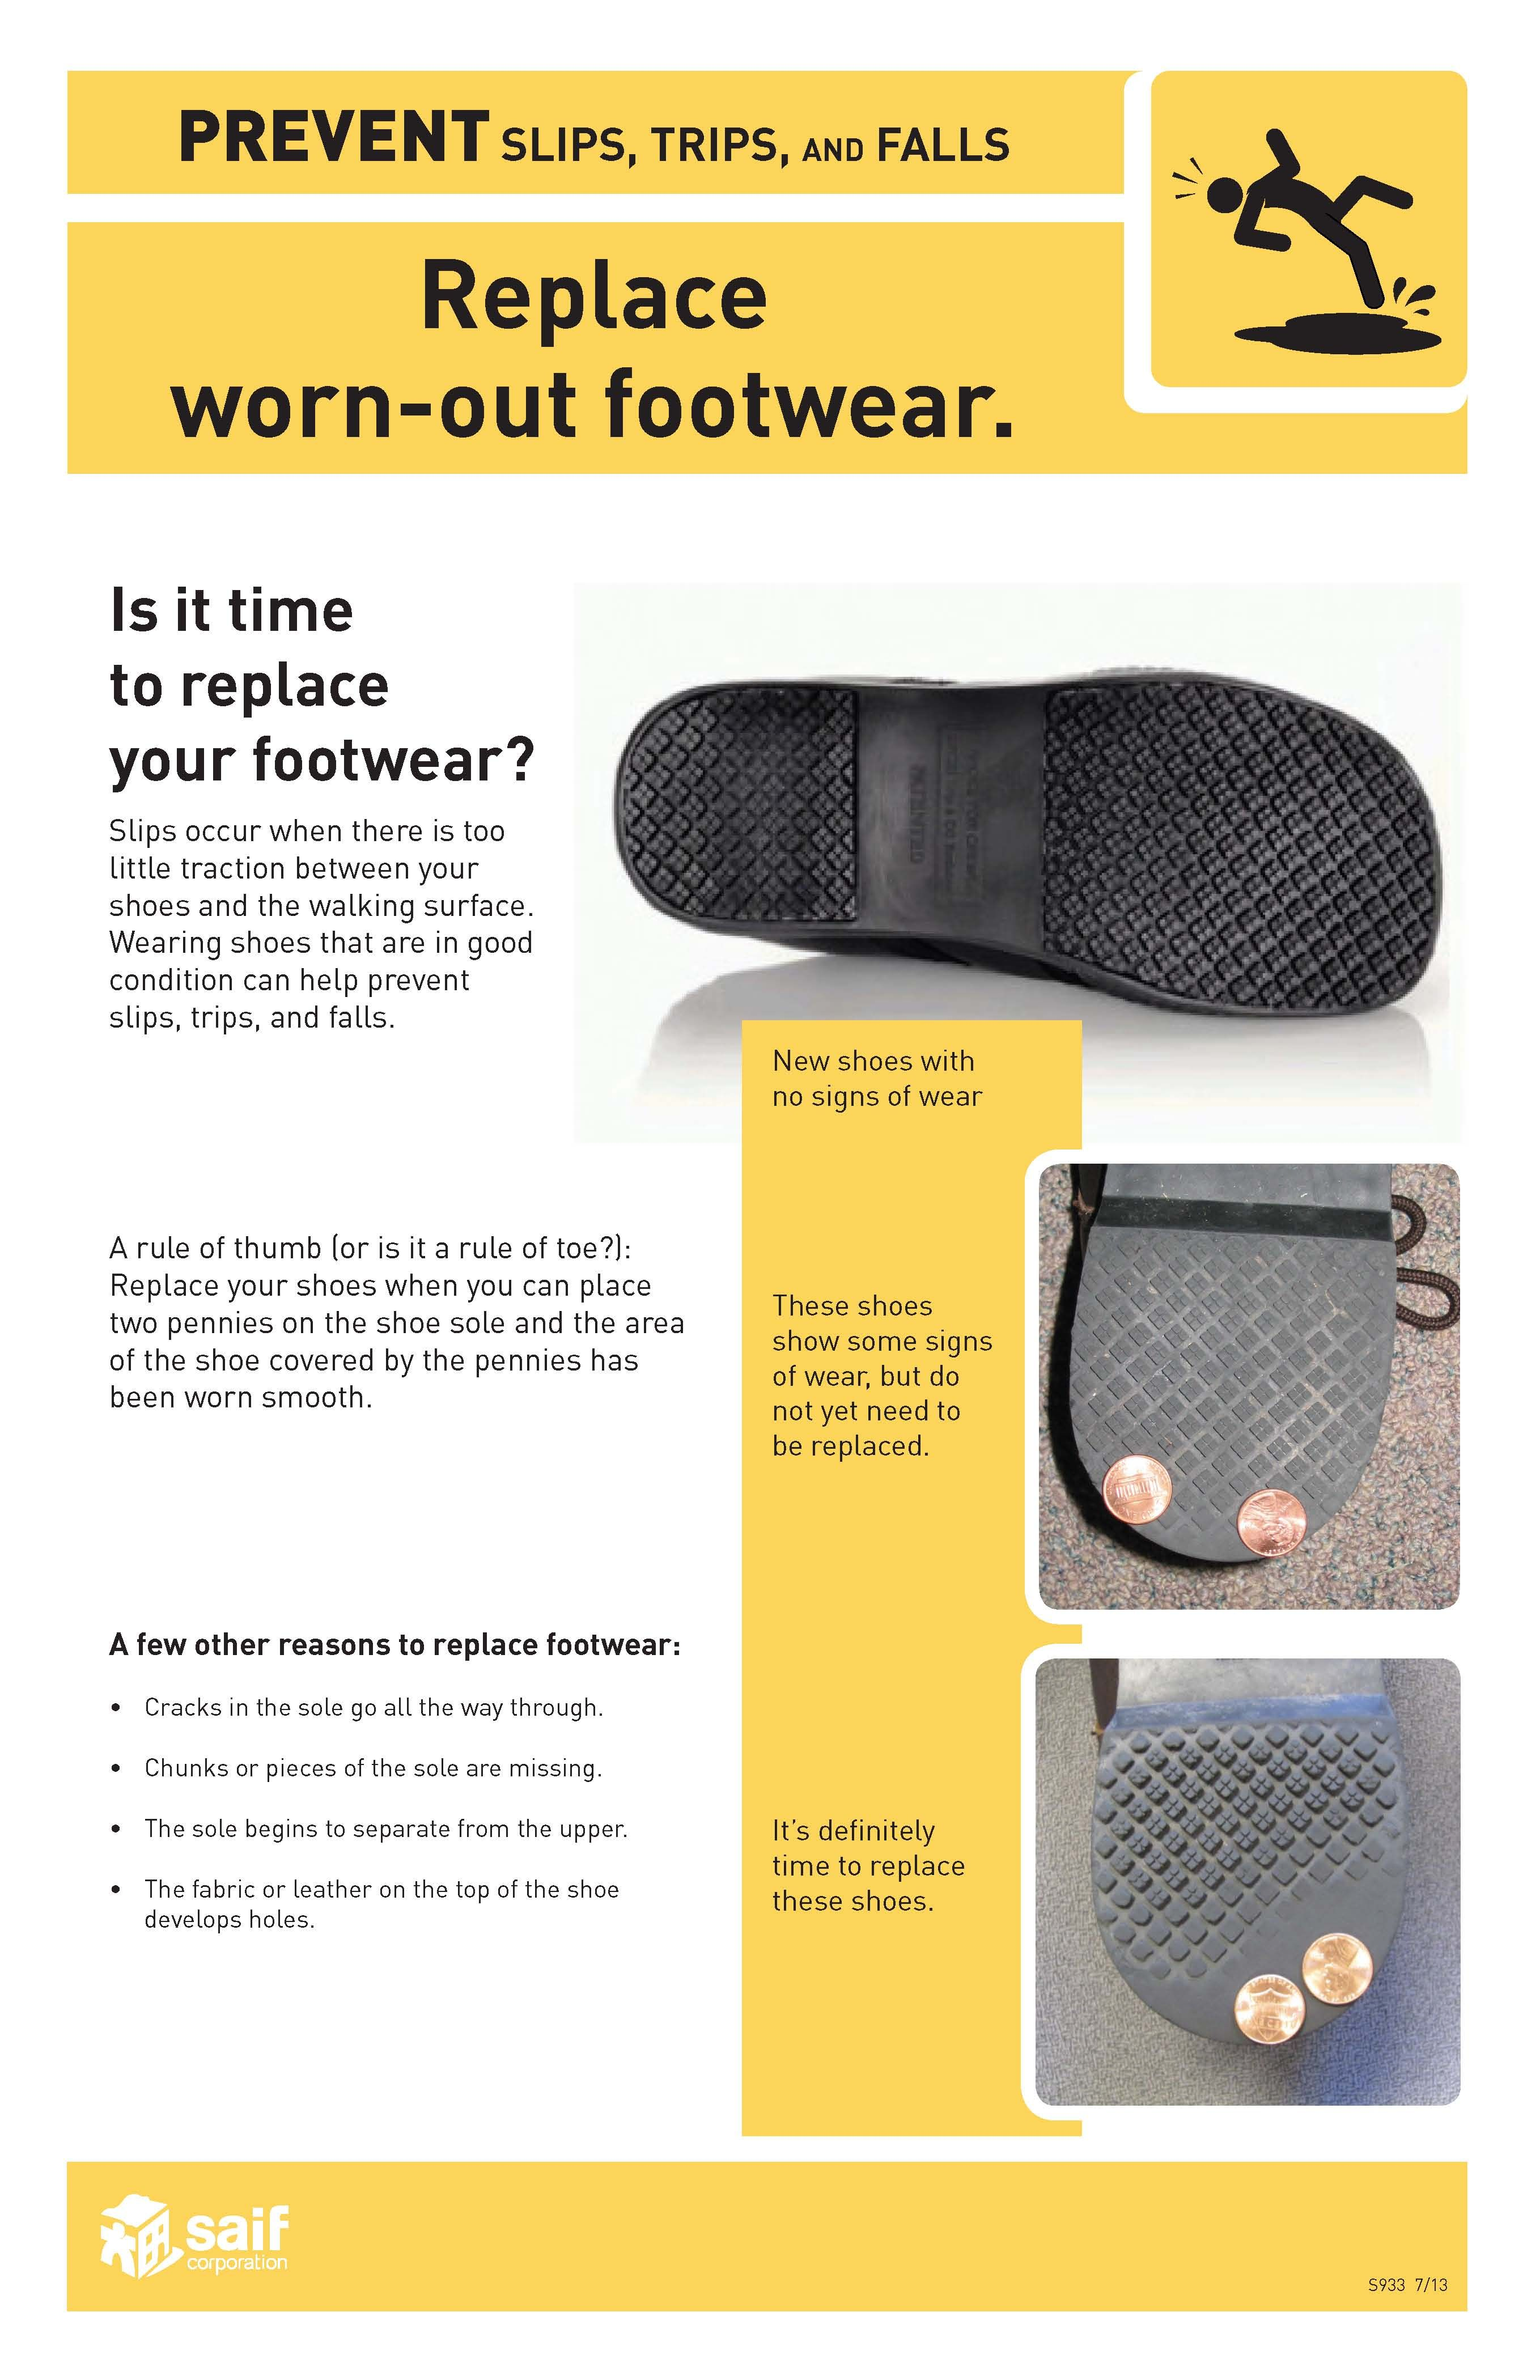 Replace wornout foot wear to help prevent slips trips